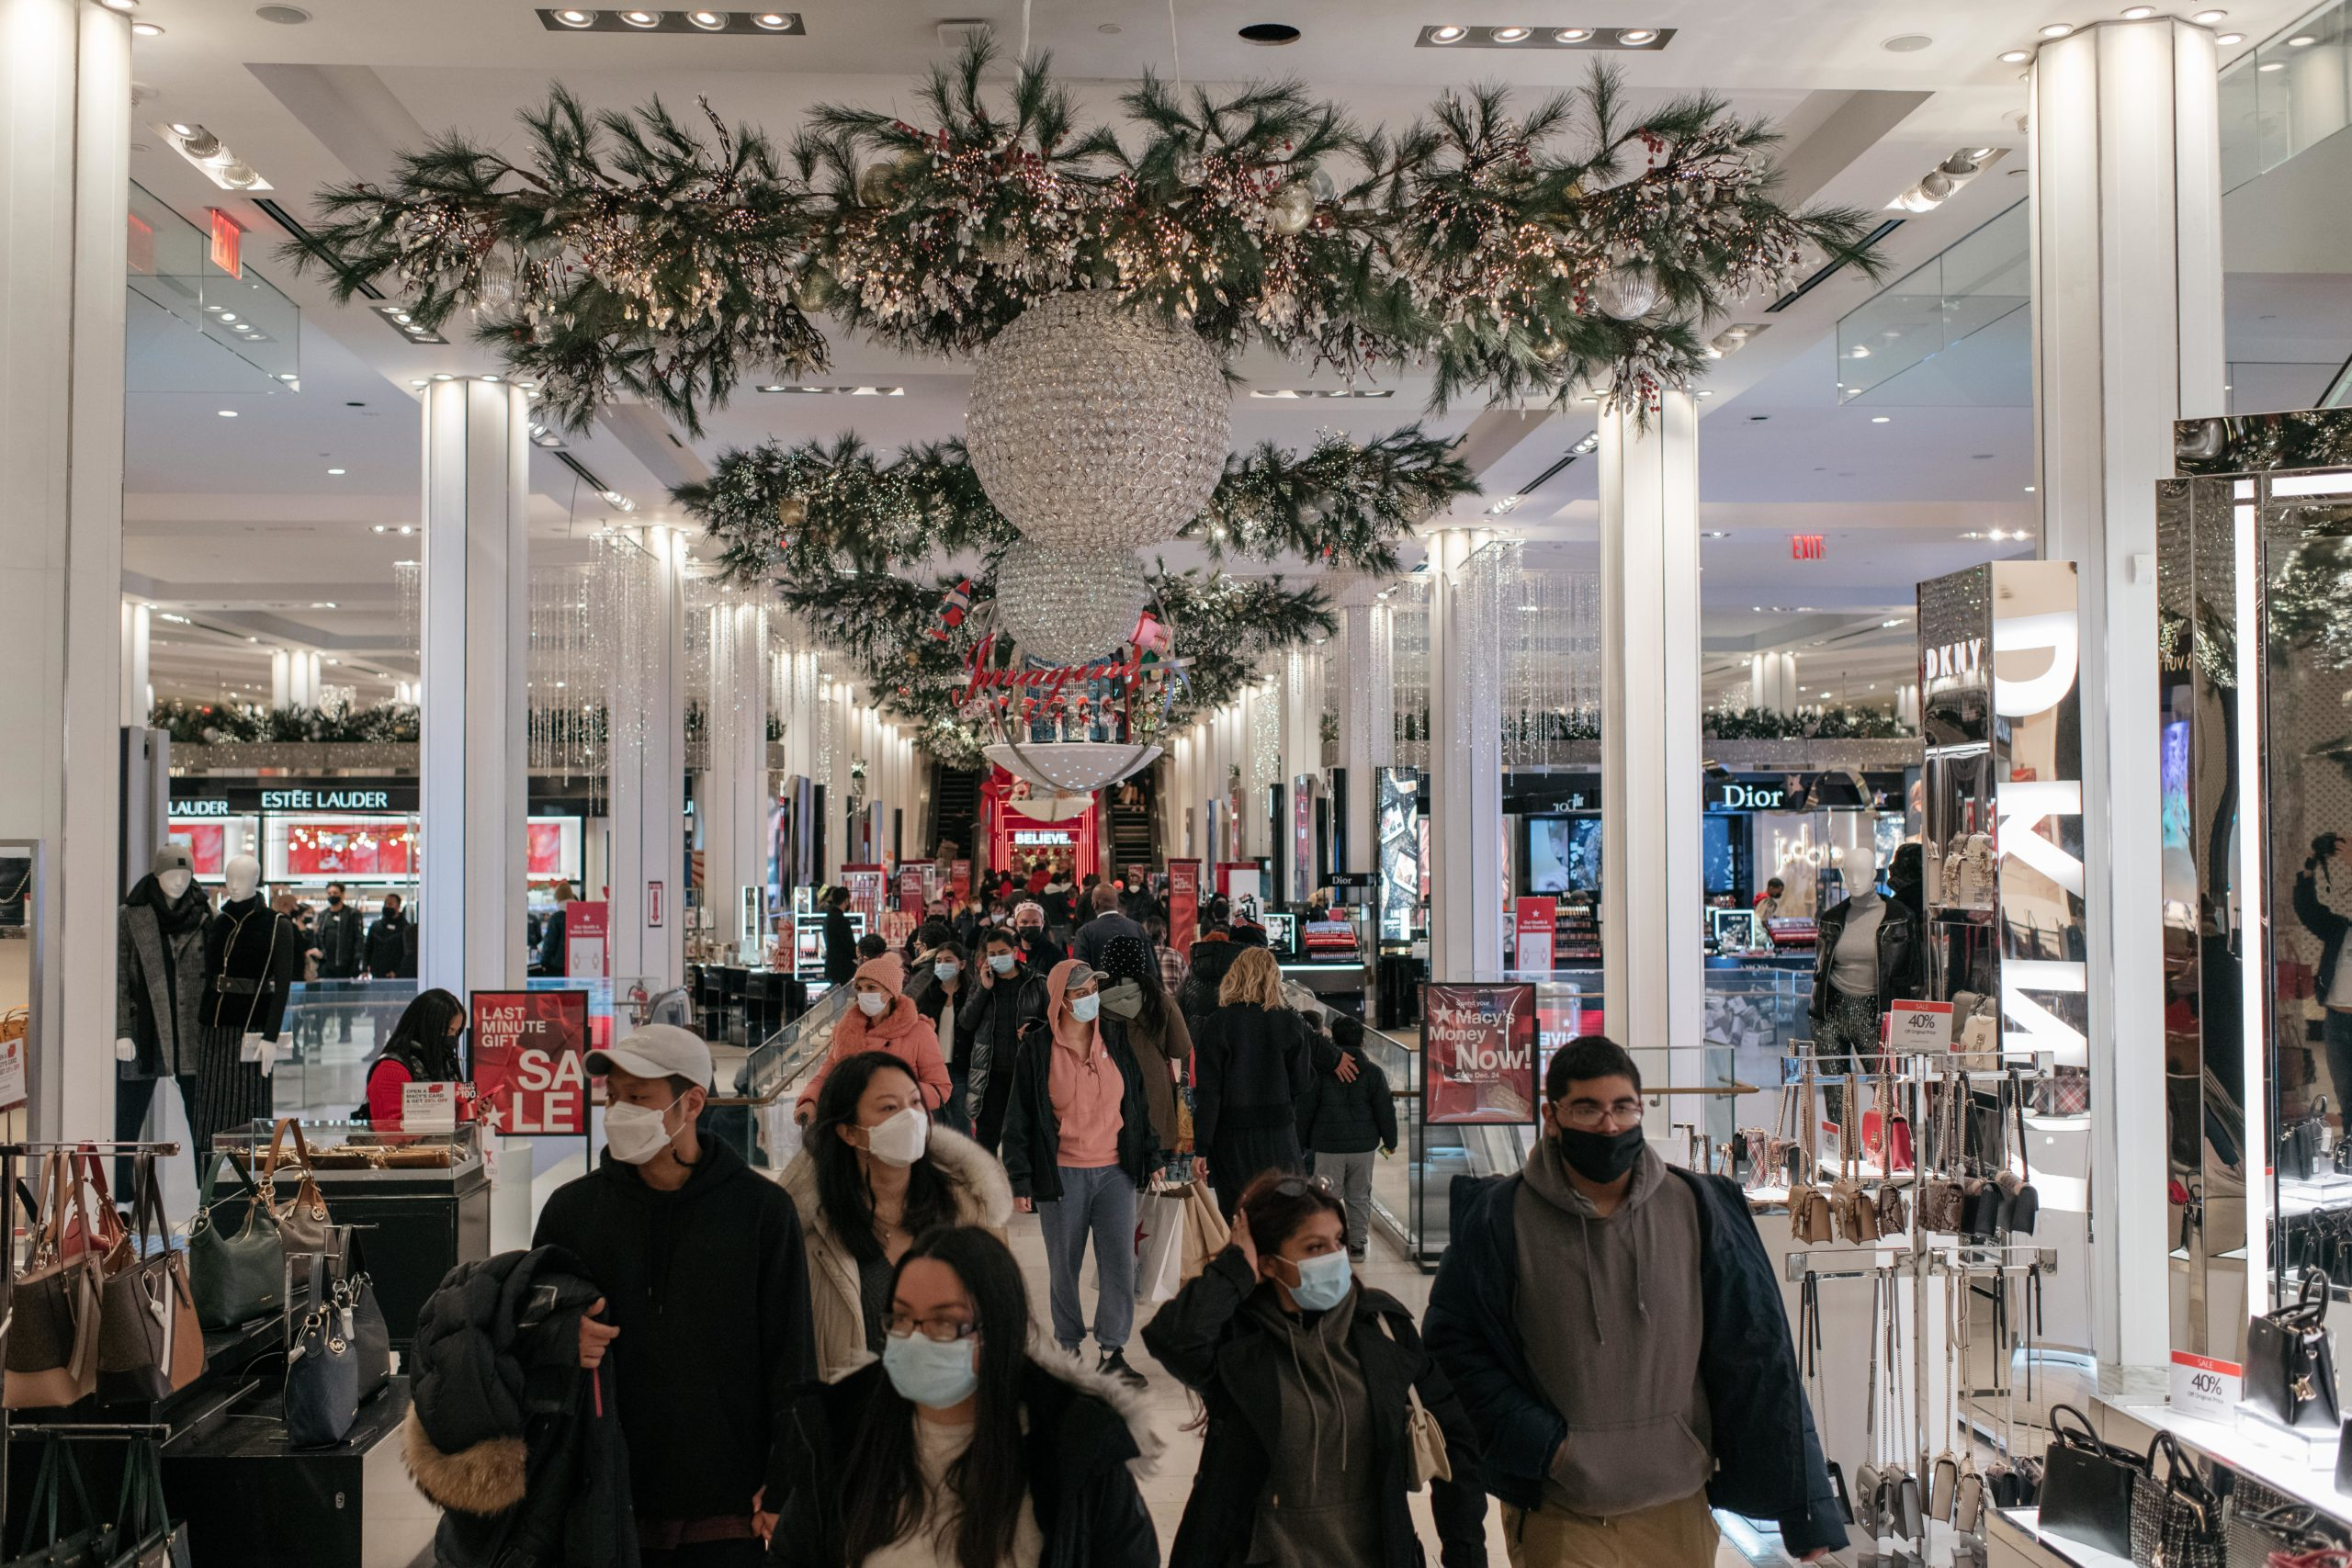 Holiday shoppers make a last-minute trip to the Macy's flagship department store in New York City on Dec. 24. (Scott Heins/Getty Images)